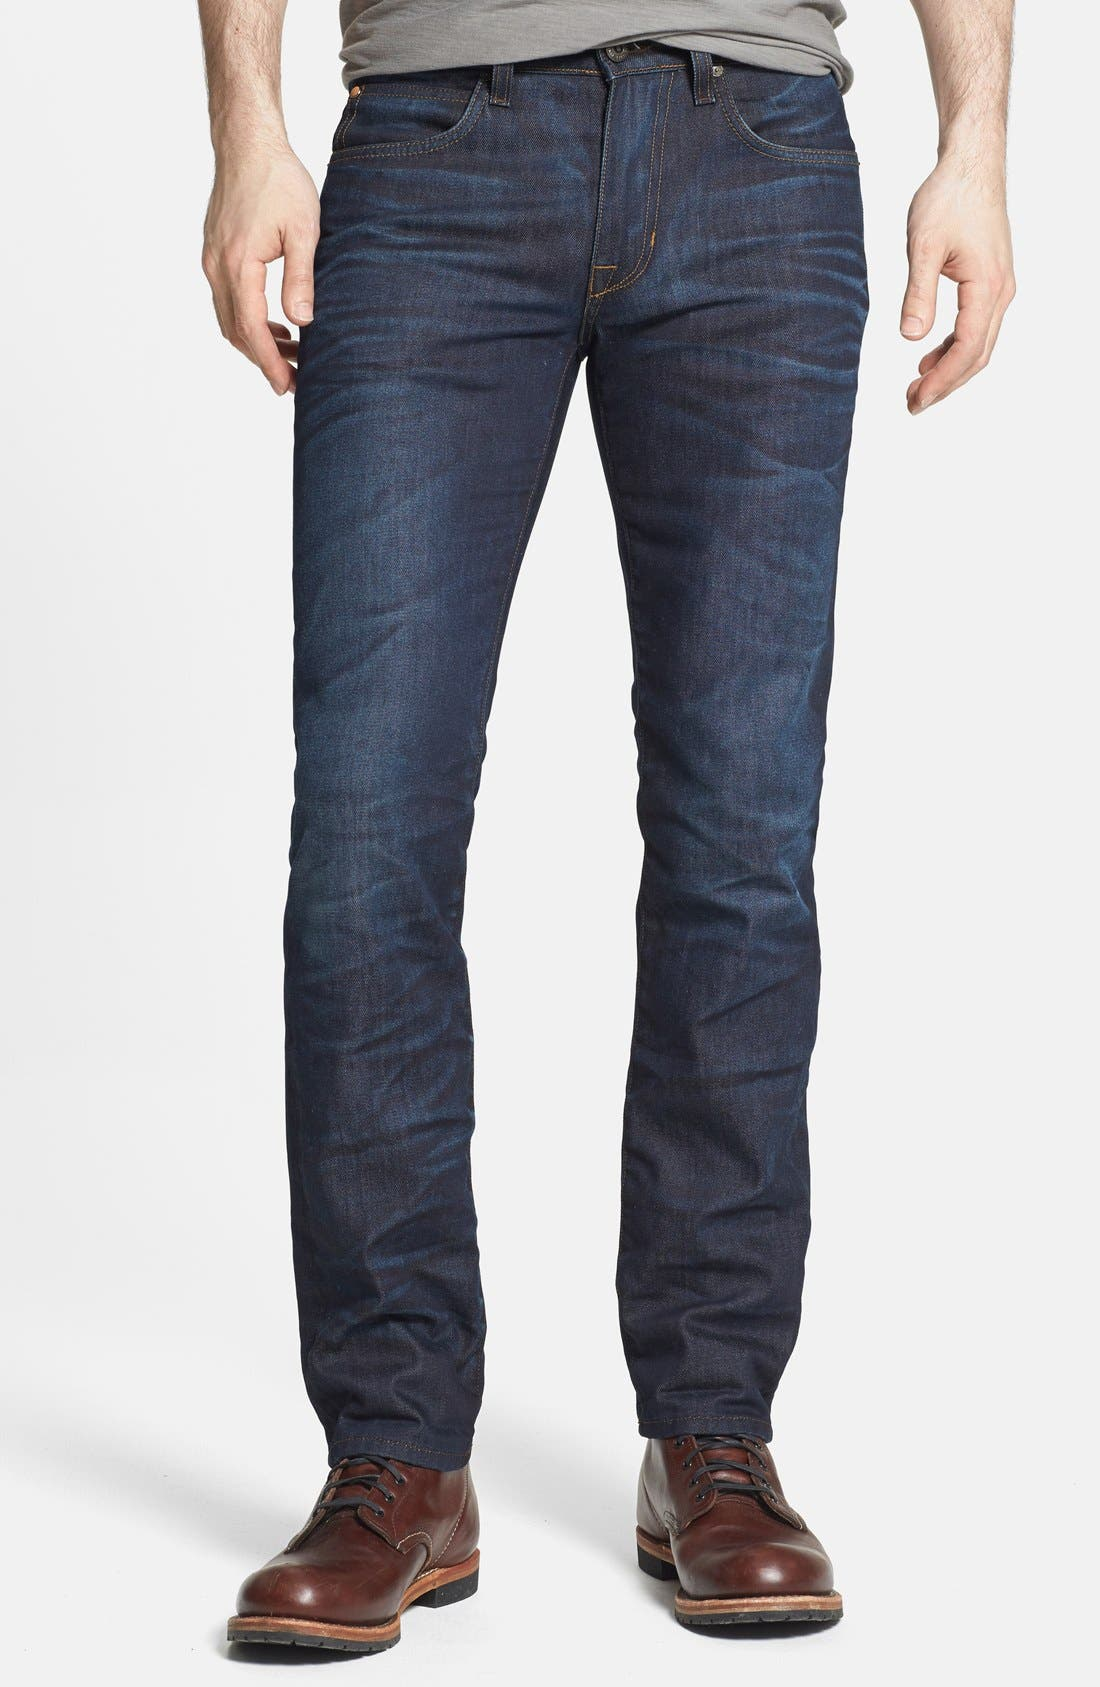 Alternate Image 1 Selected - Joe's 'Slim' Skinny Fit Jeans (Andres)